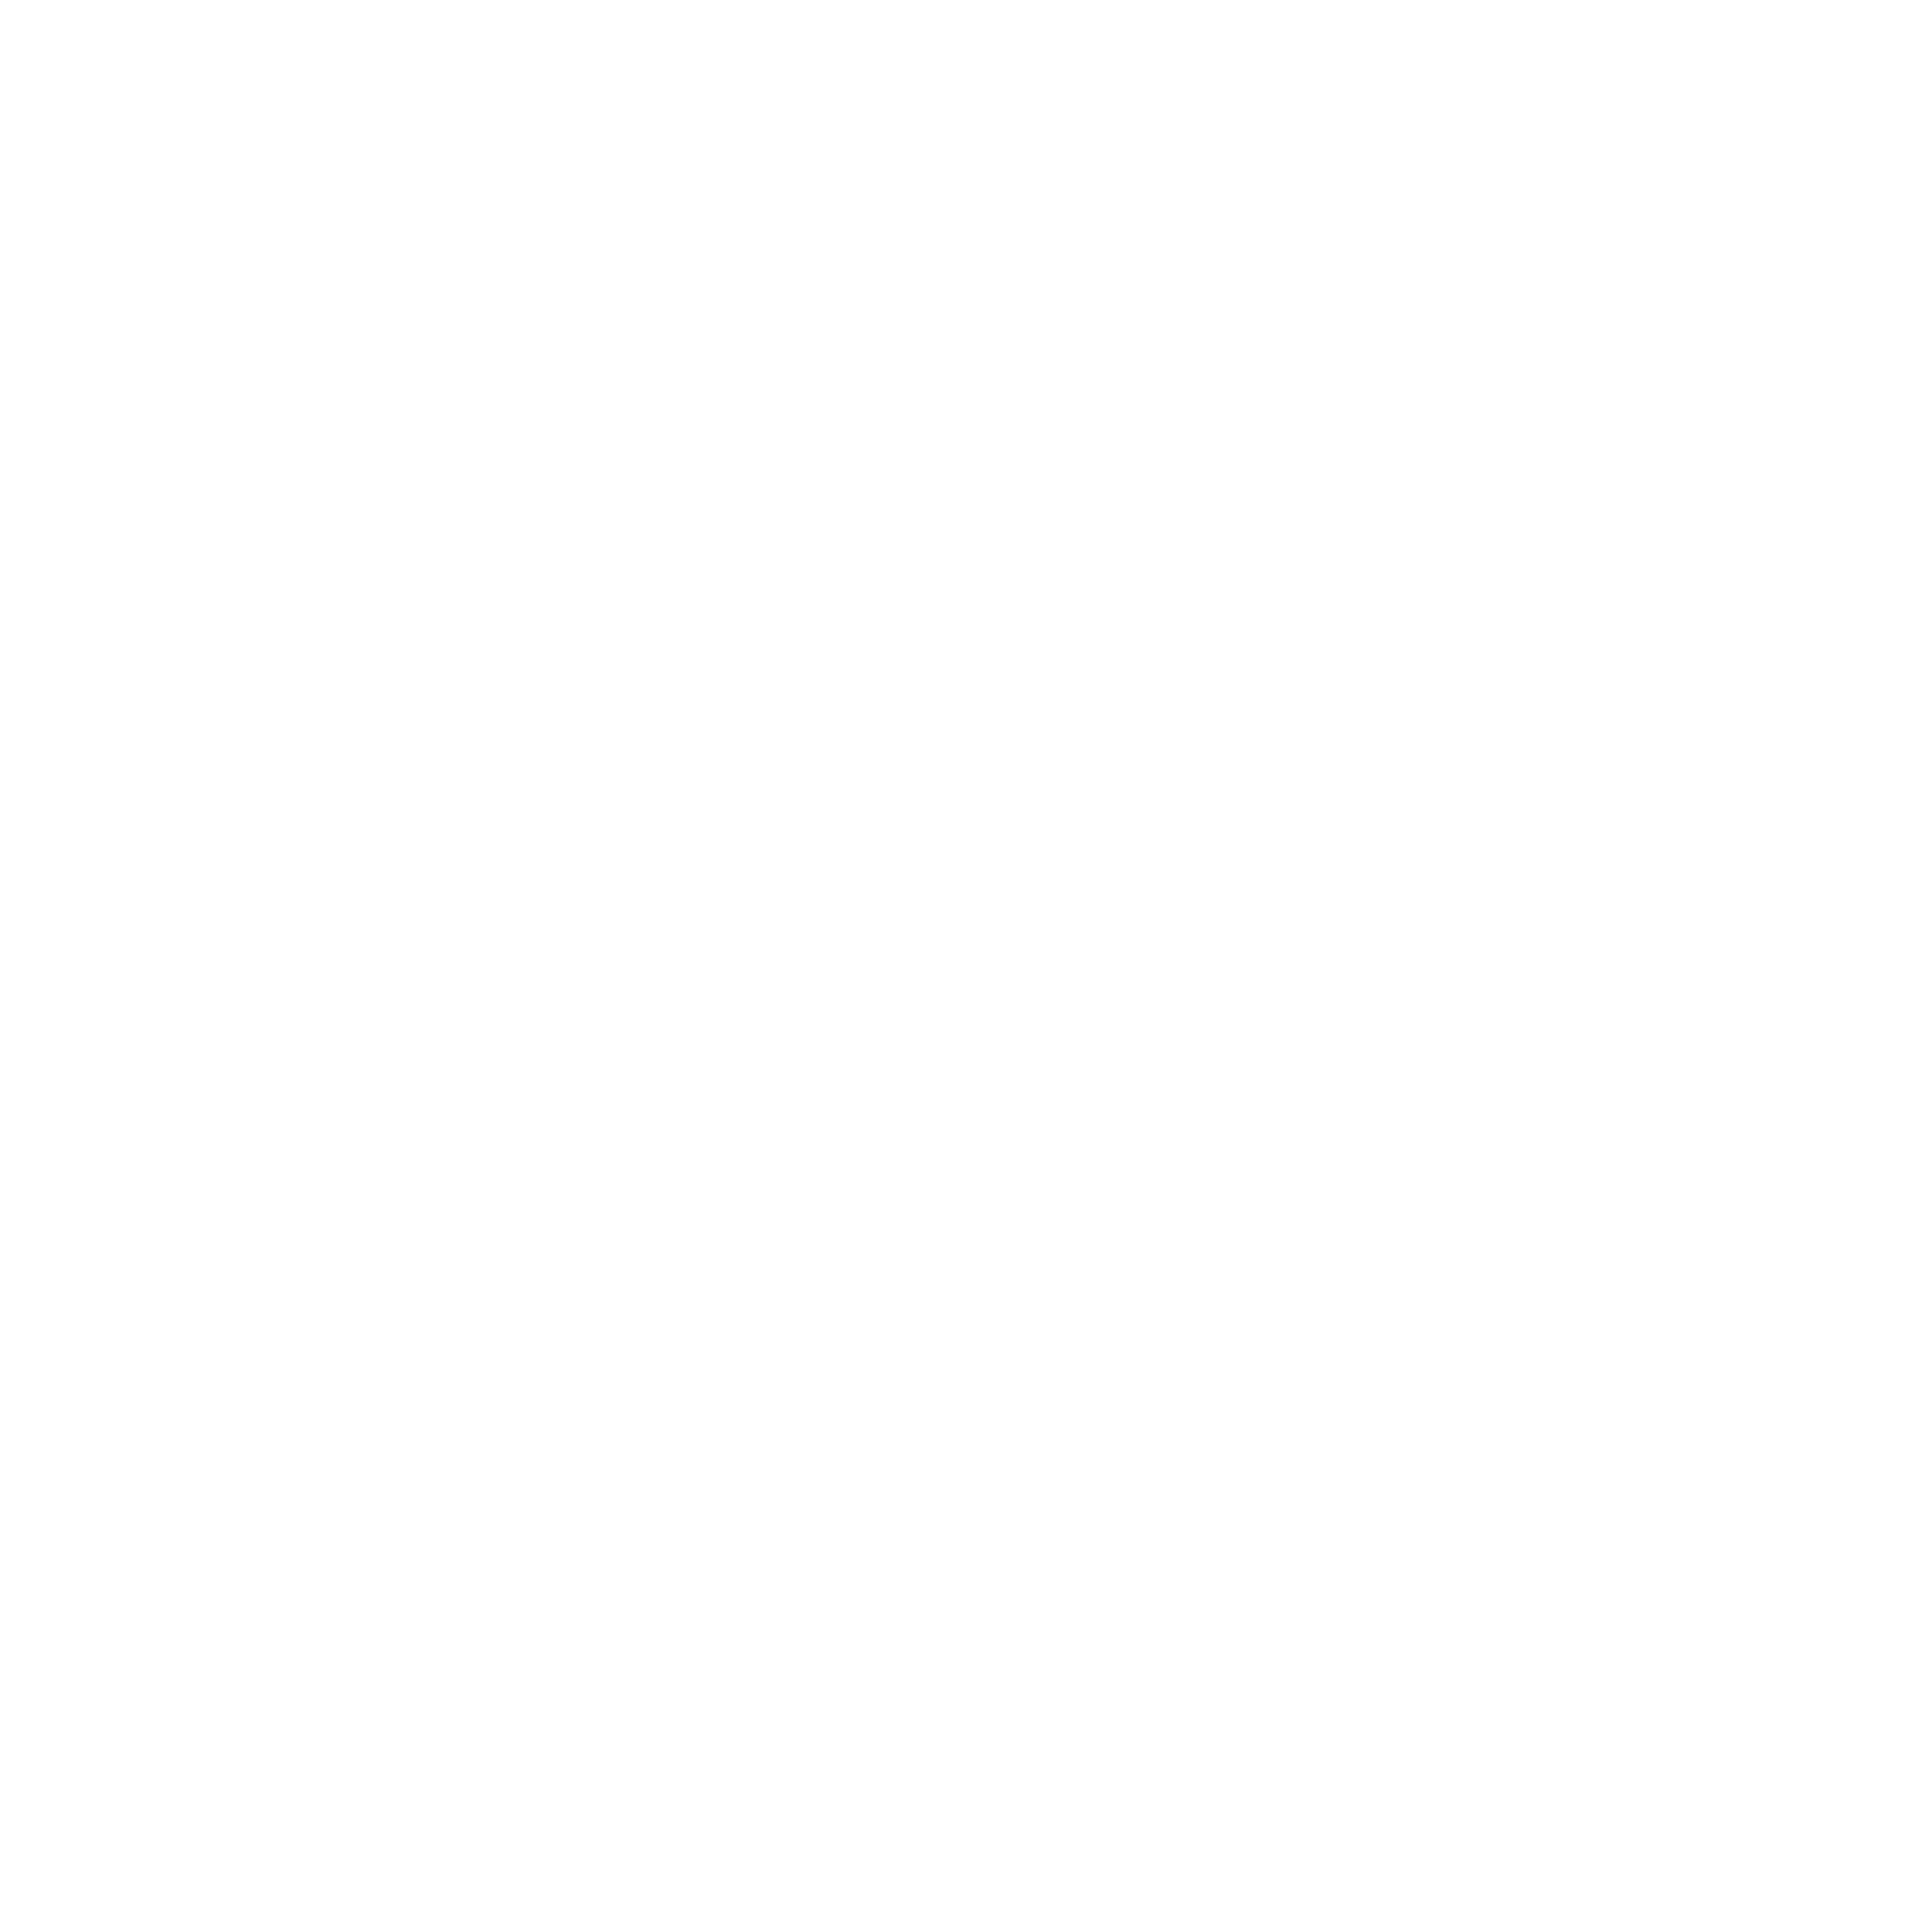 W Hotels Logo PNG Transparent & SVG Vector.